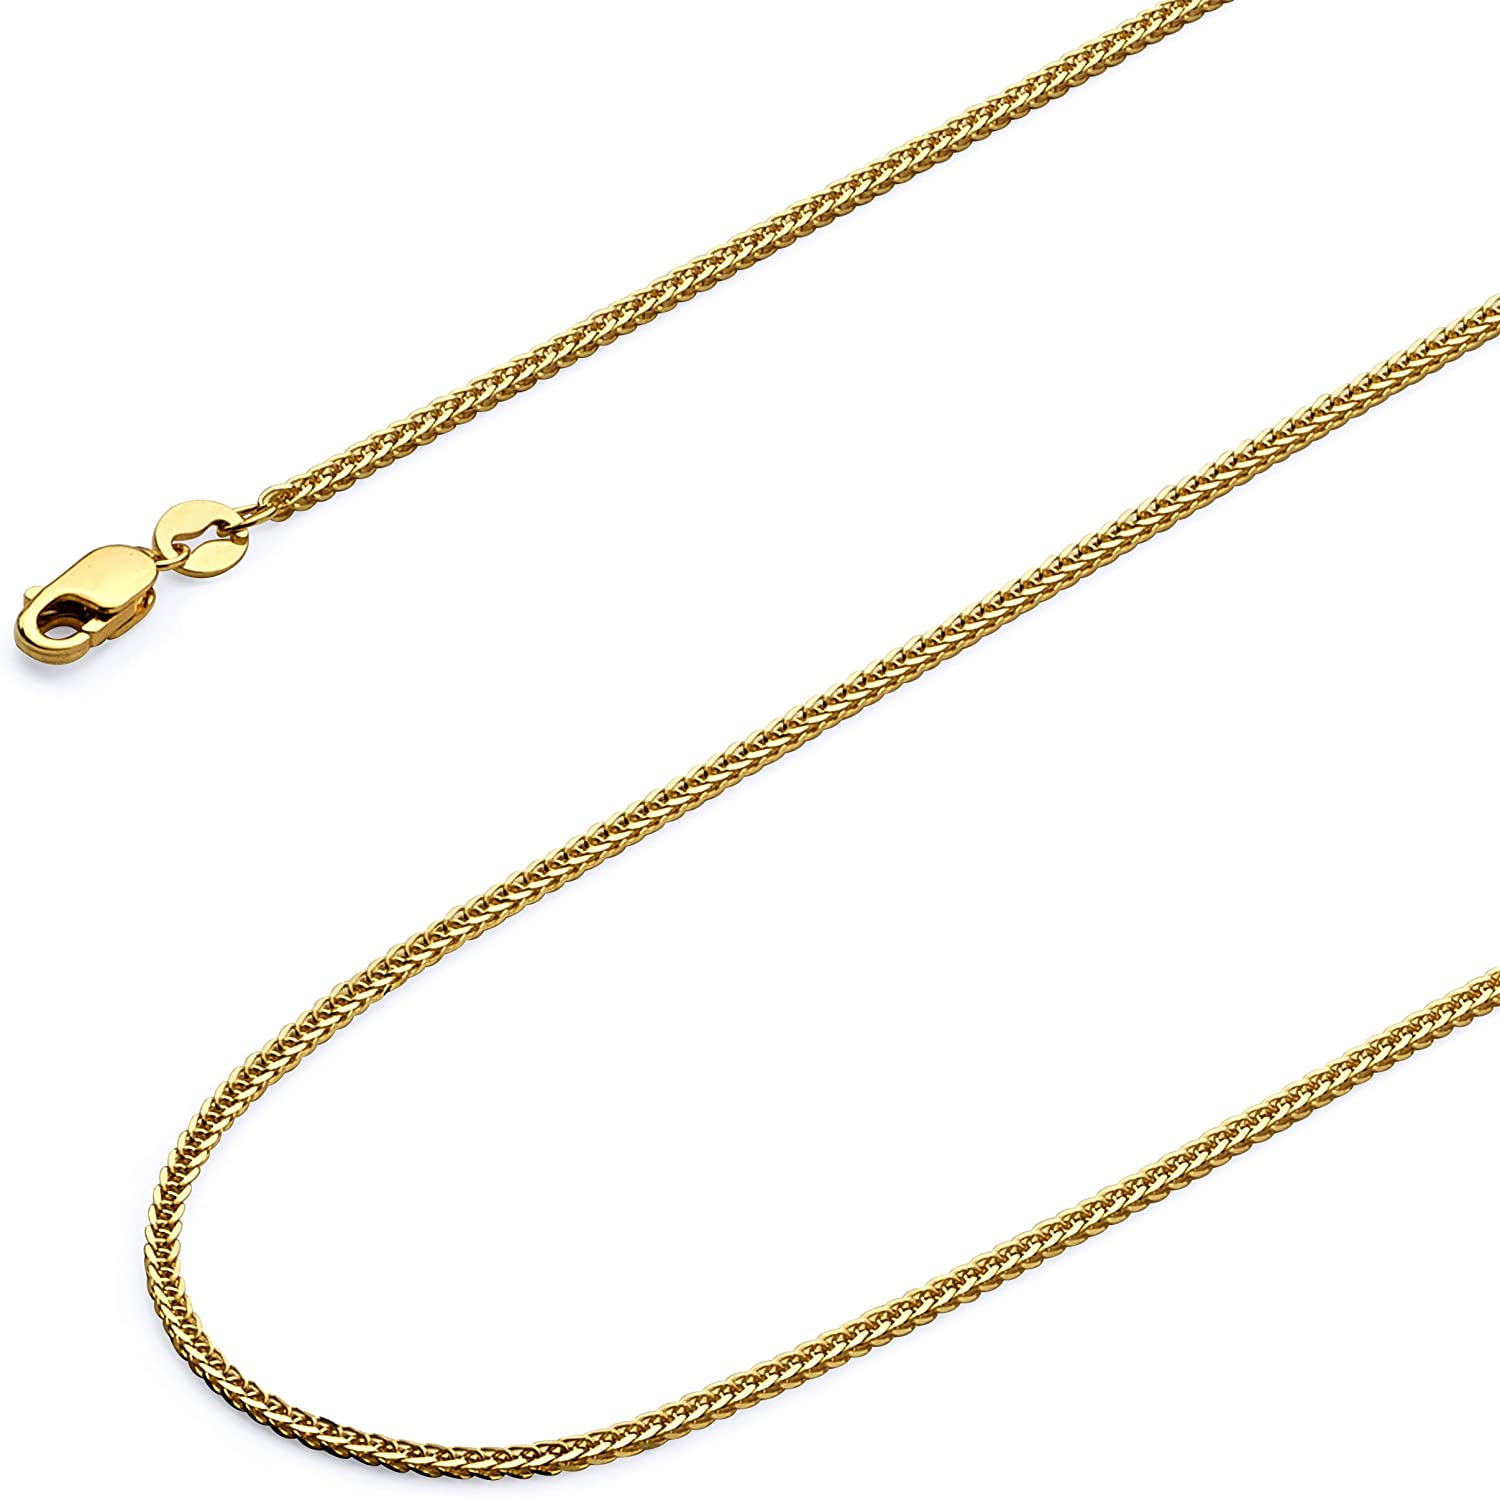 14k REAL Yellow OR White OR Rose/Pink Gold Solid 0.8mm Diamond Cut Braided Square Wheat Chain Necklace with Lobster Claw Clasp